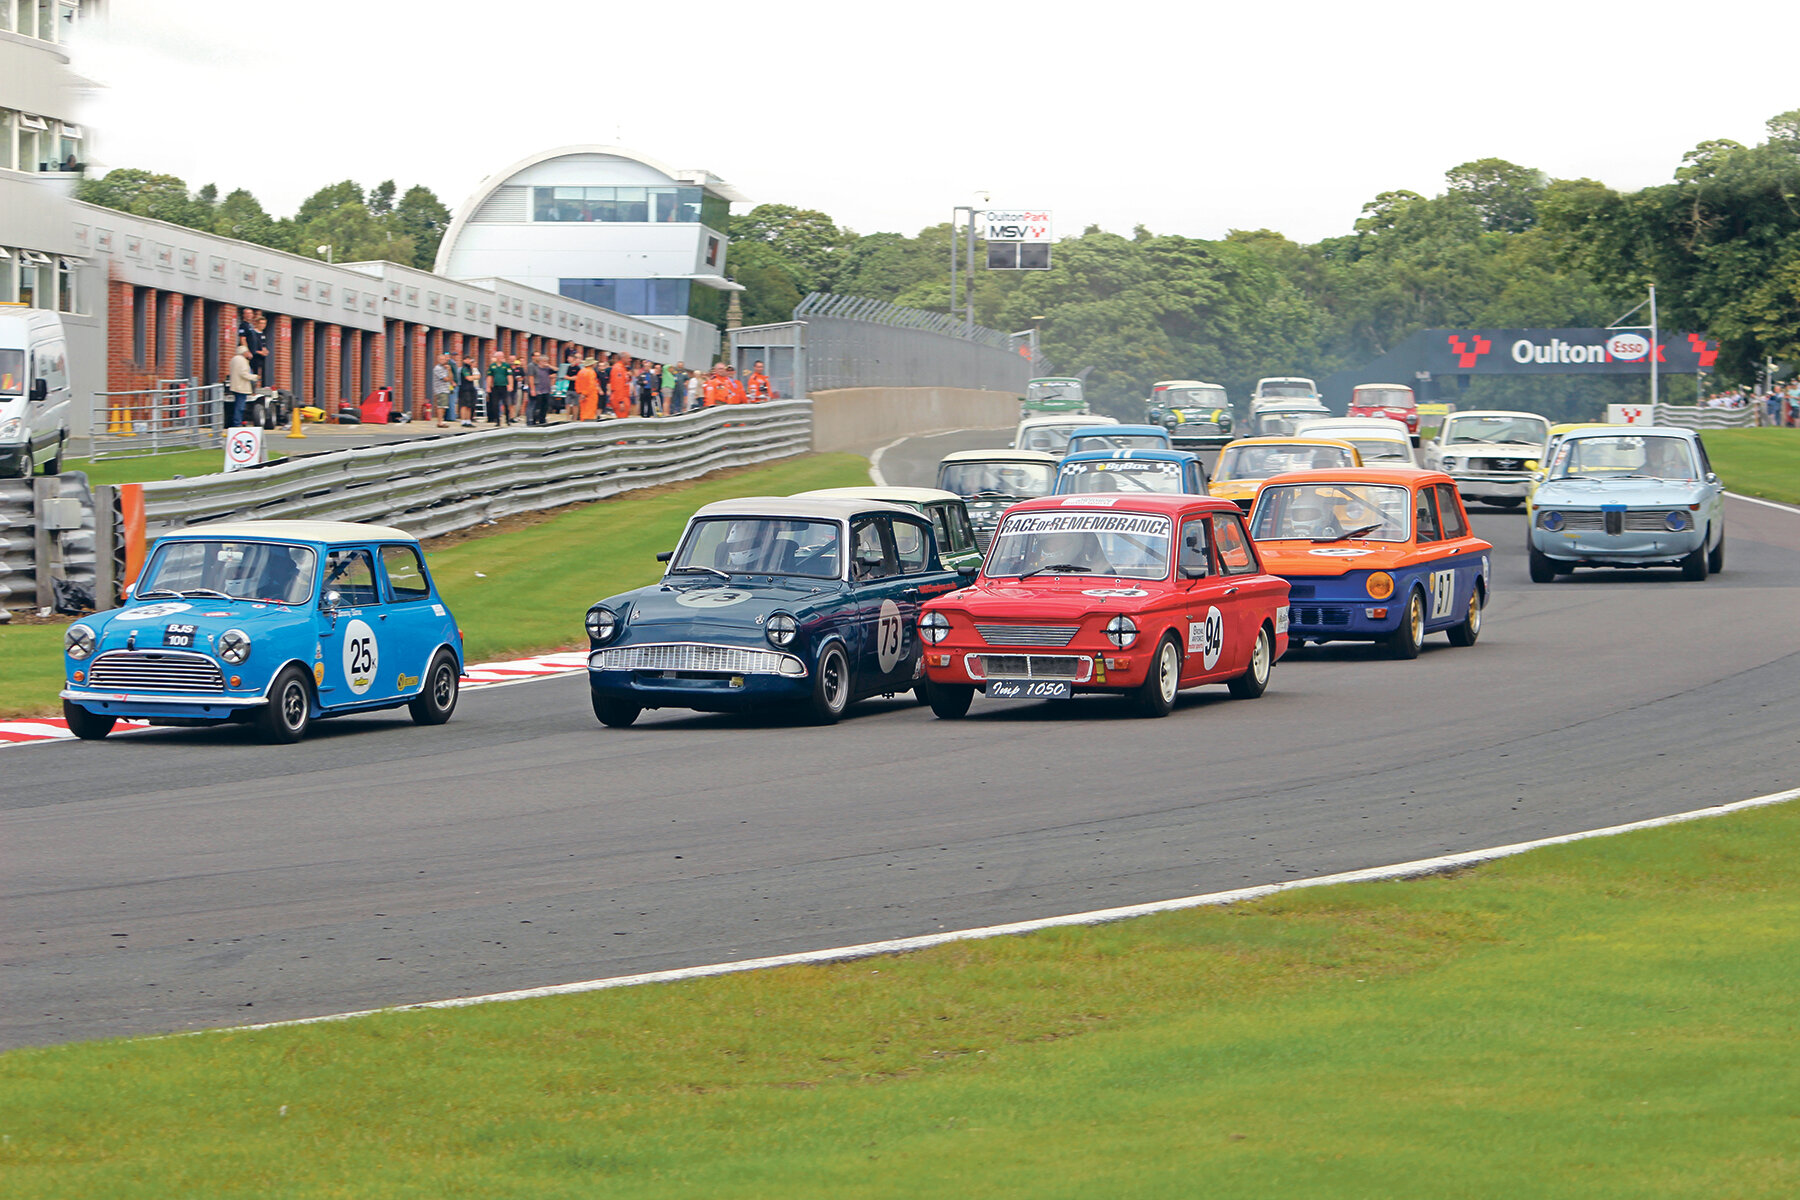 The Gold Cup's nail-biting races have long brought classic fans to Oulton Park, but now you'll be able to bid on cars at the event, too.